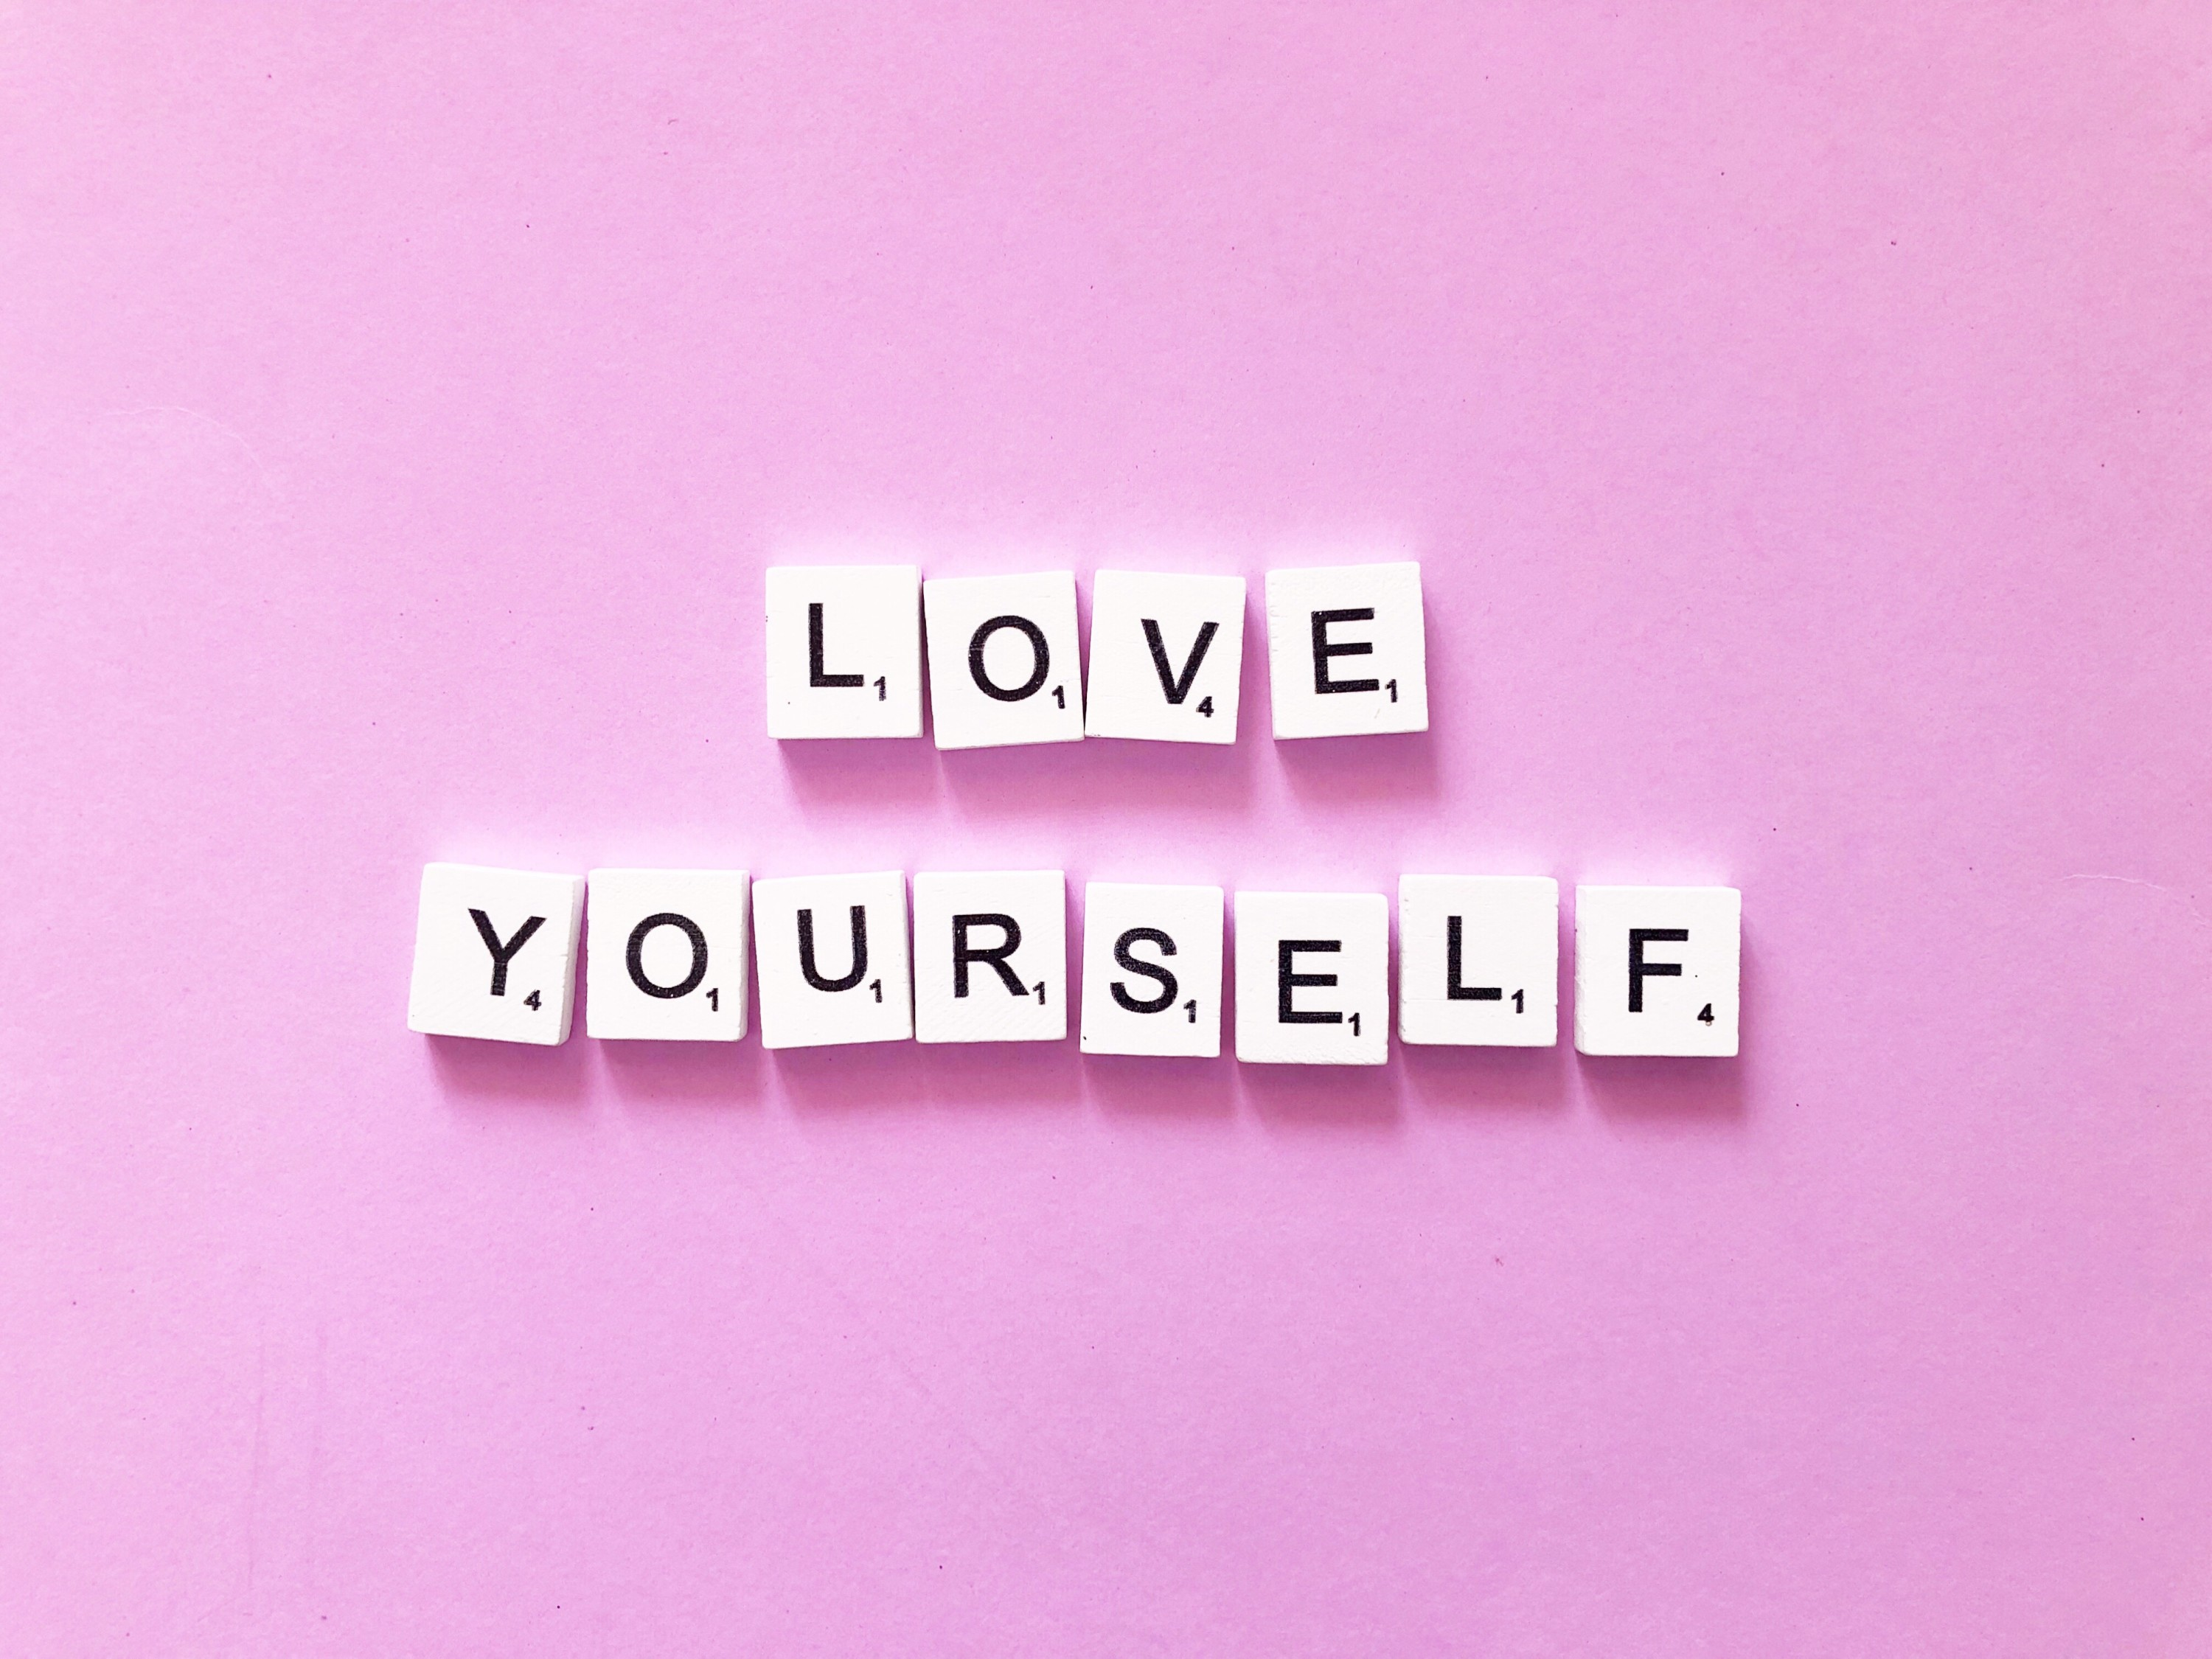 Love Yourself First. Then Spread Love.